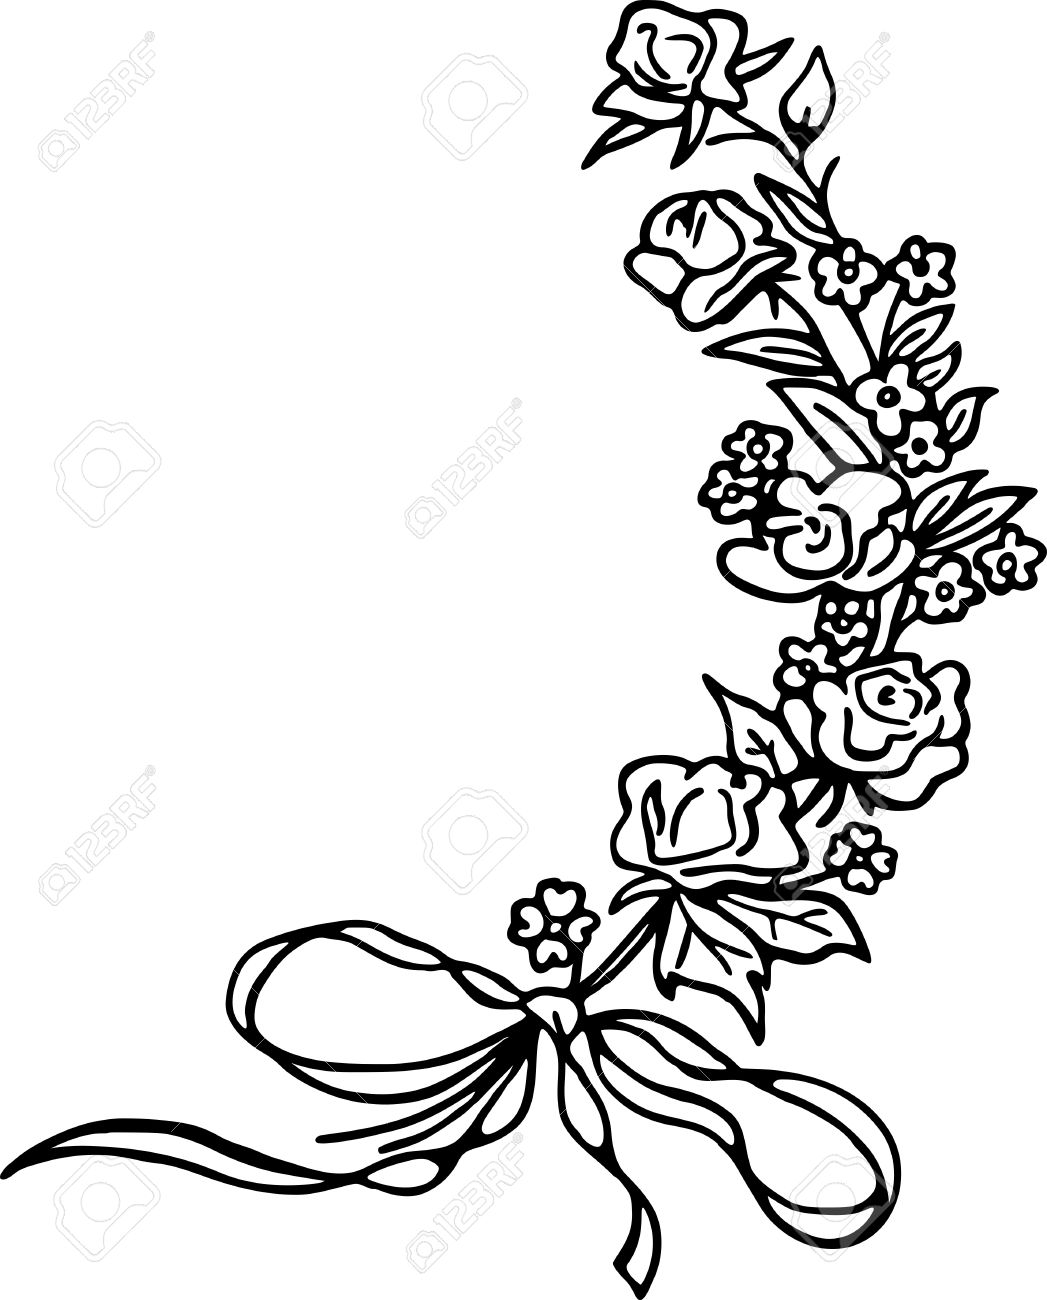 1047x1300 Simple Black And White Line Drawing Of A Sprig Of Roses